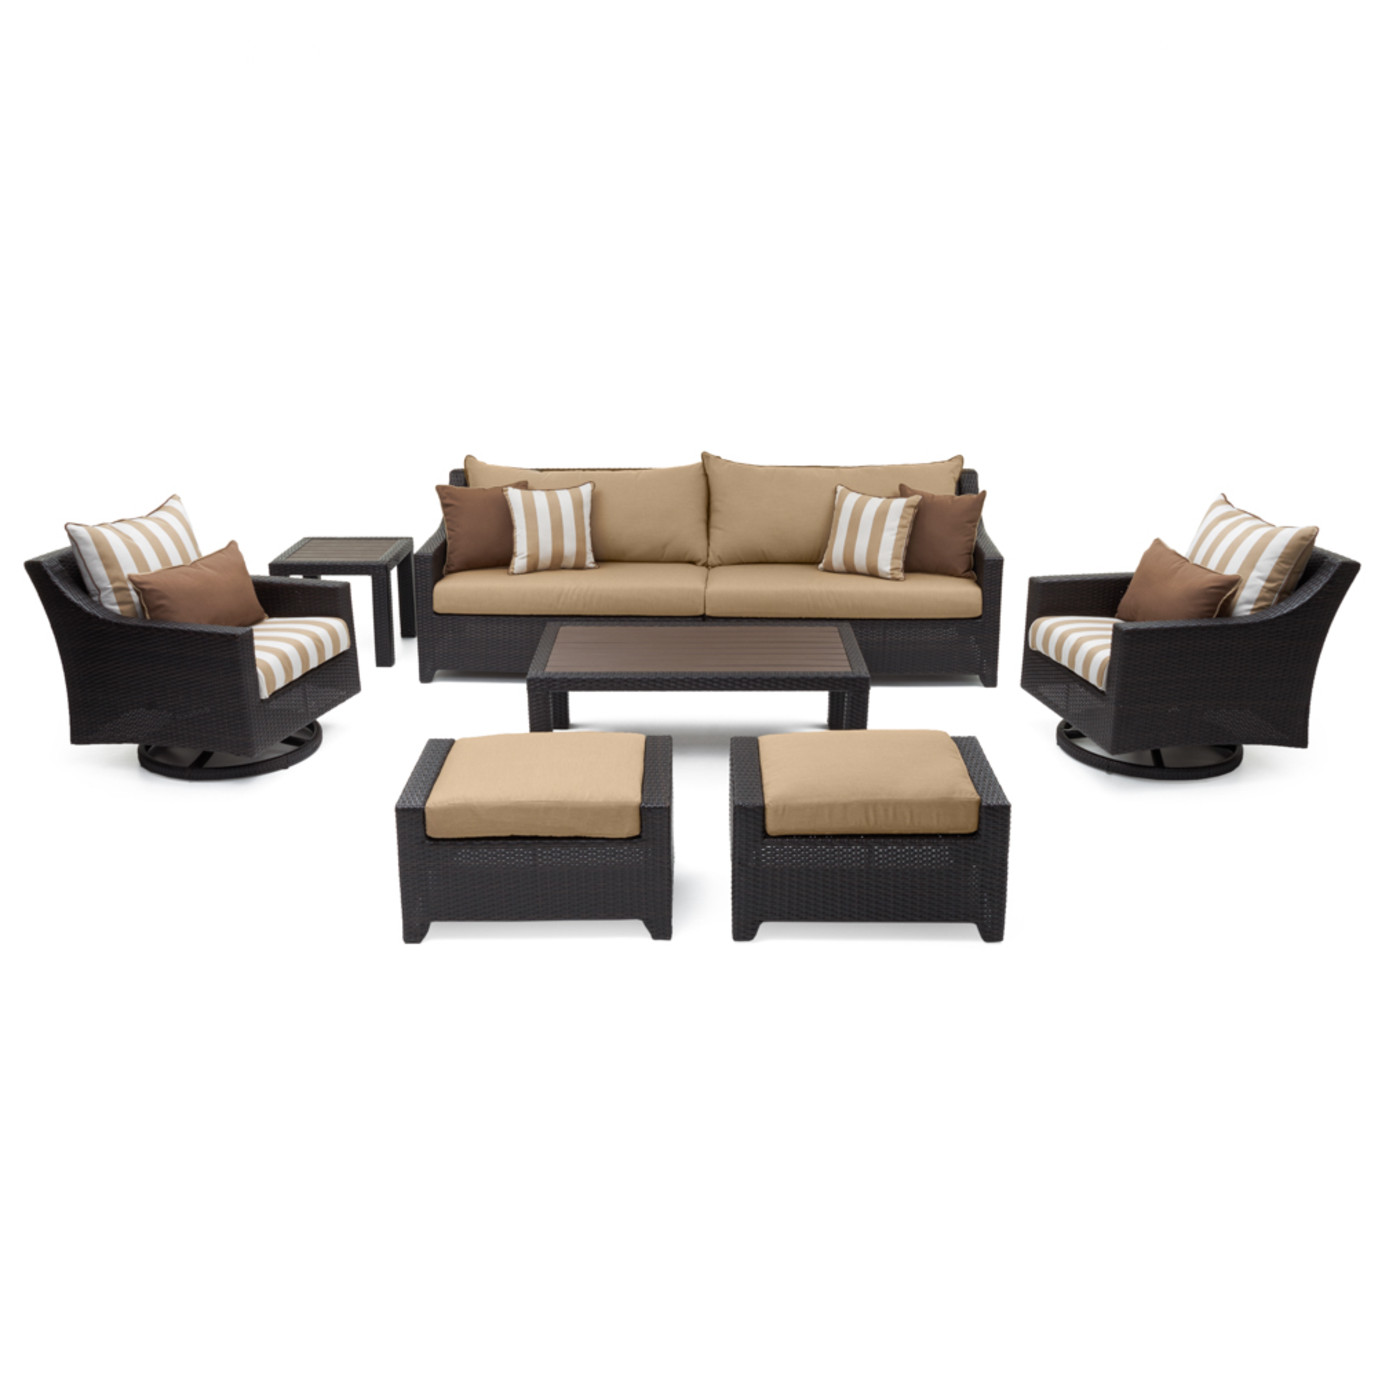 Deco™ 8pc Sofa & Club Chair Set - Maxim Beige Design